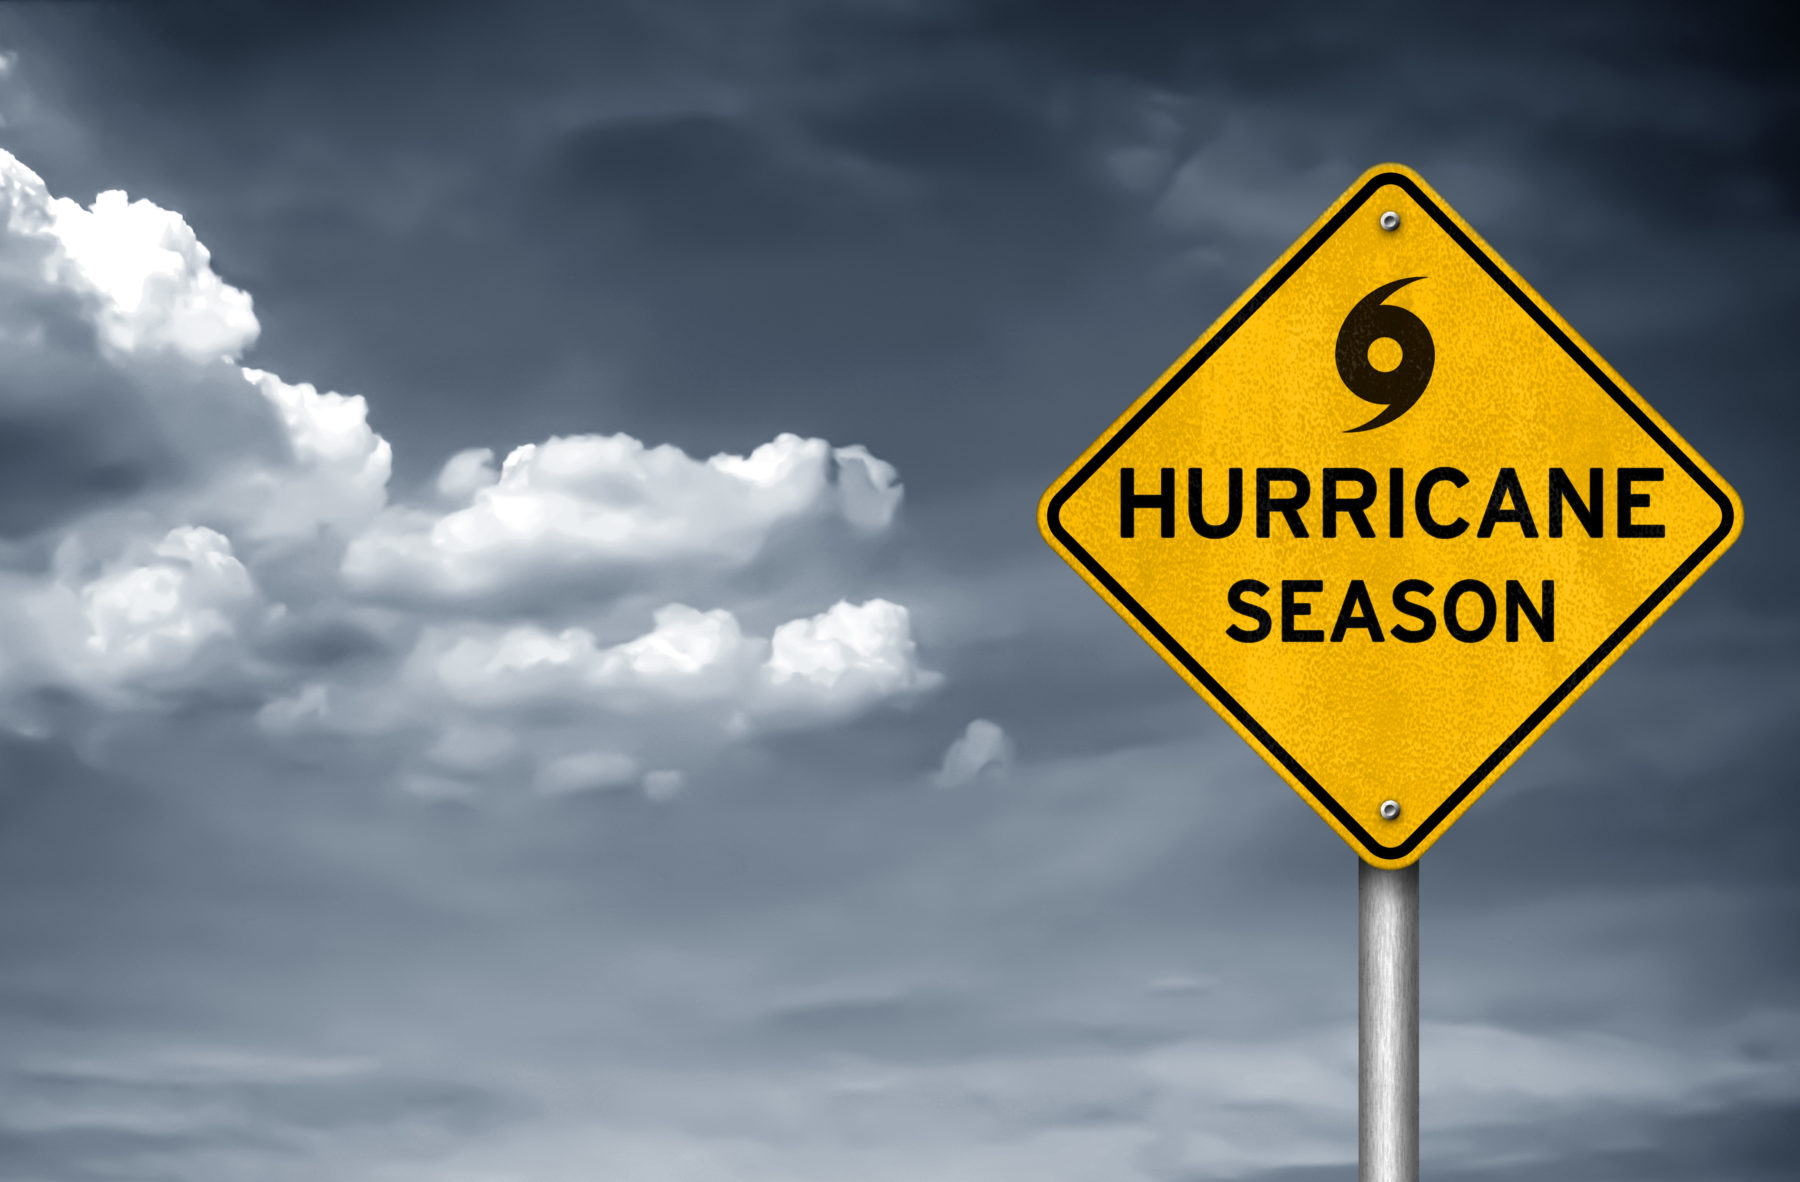 a sign warning of hurricane season